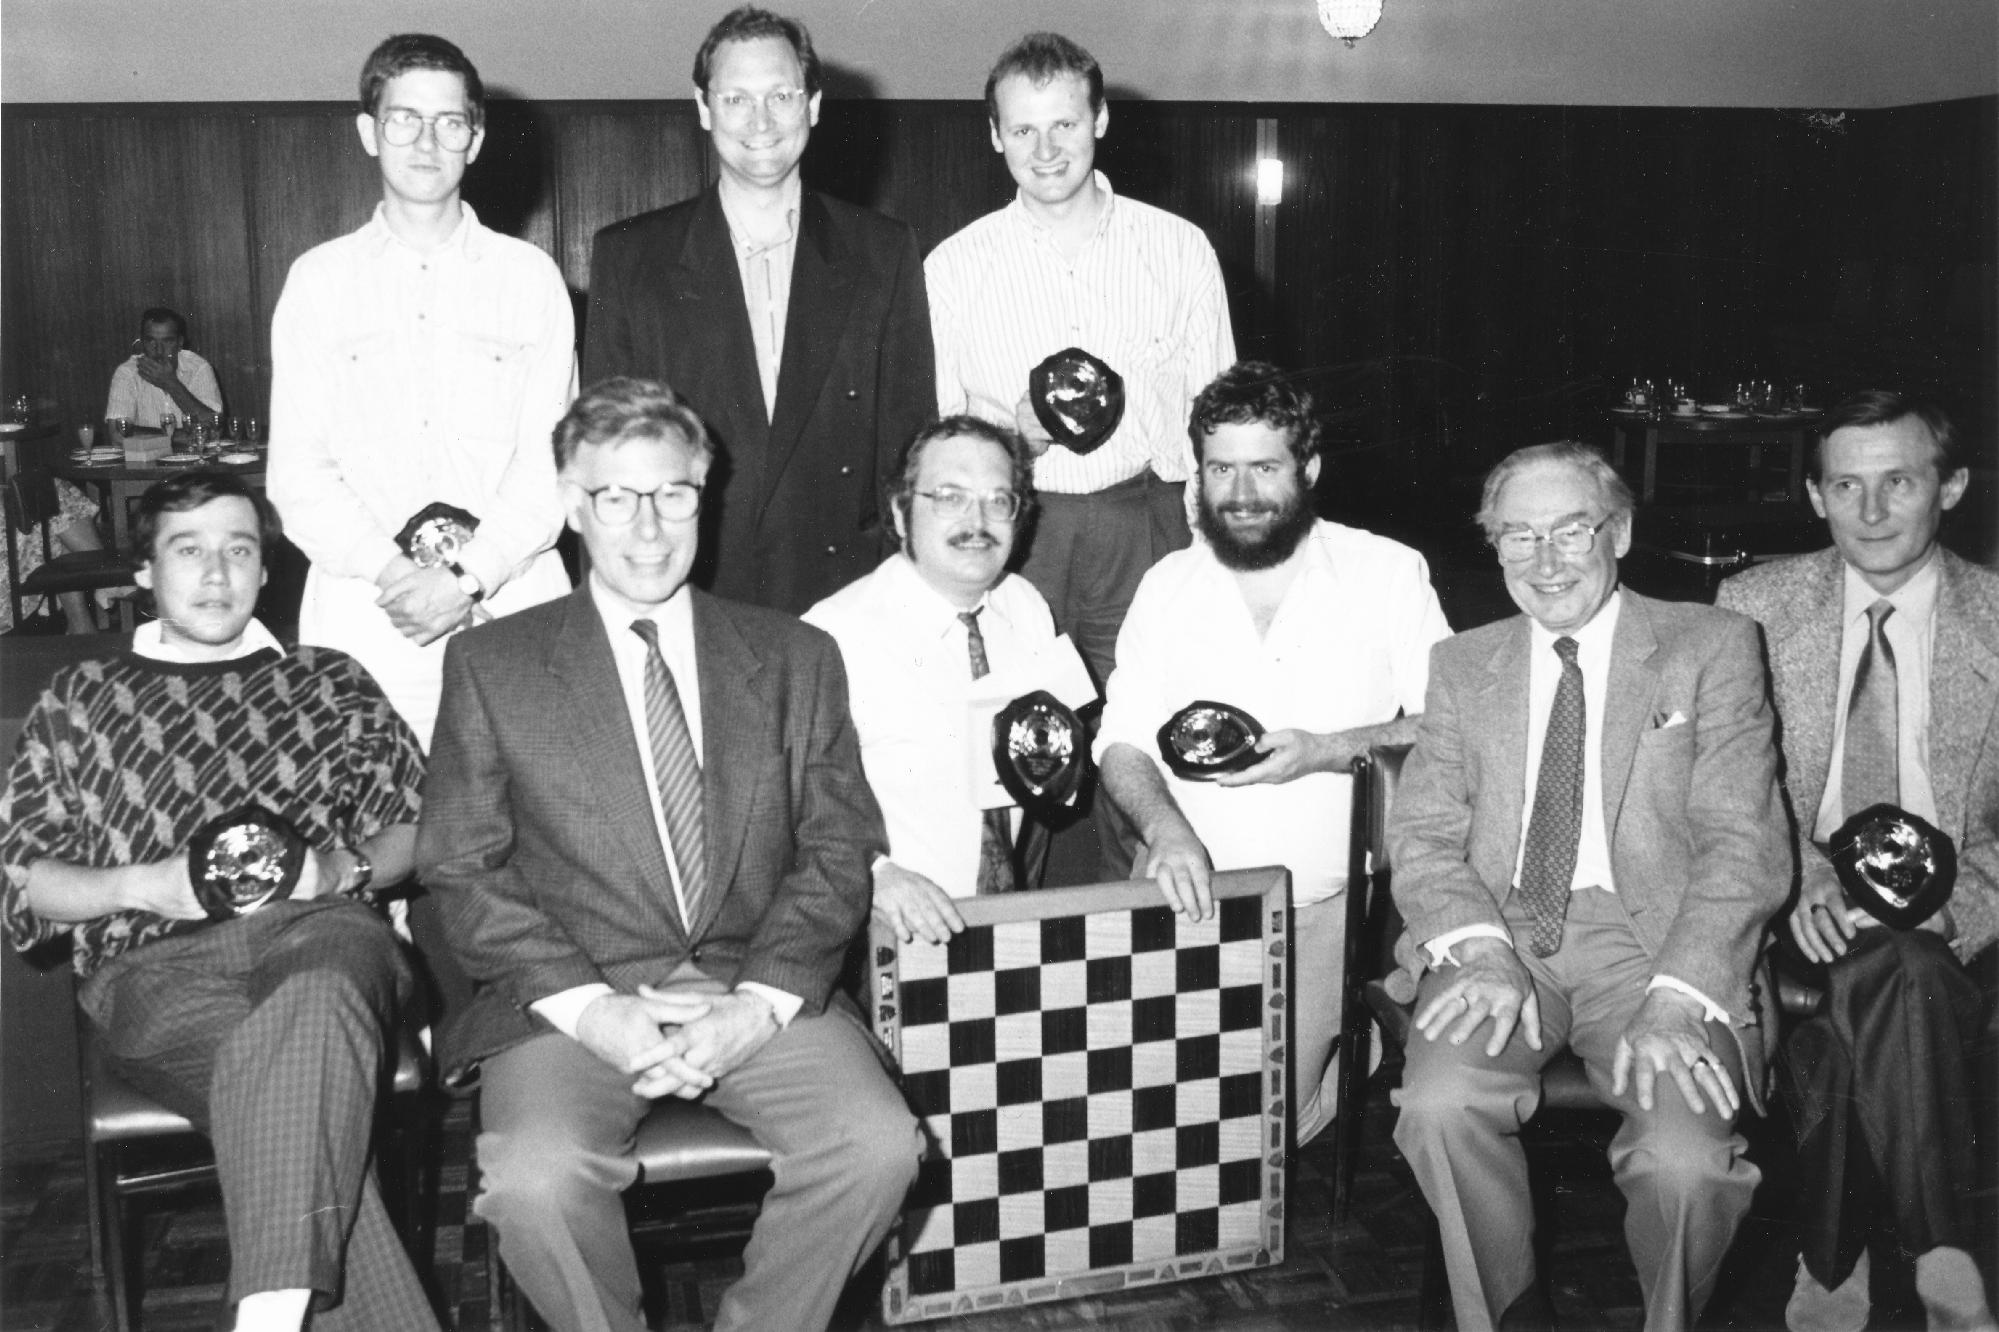 Gary Kenworthy (holding board) at a BCF National Club Final (1992)